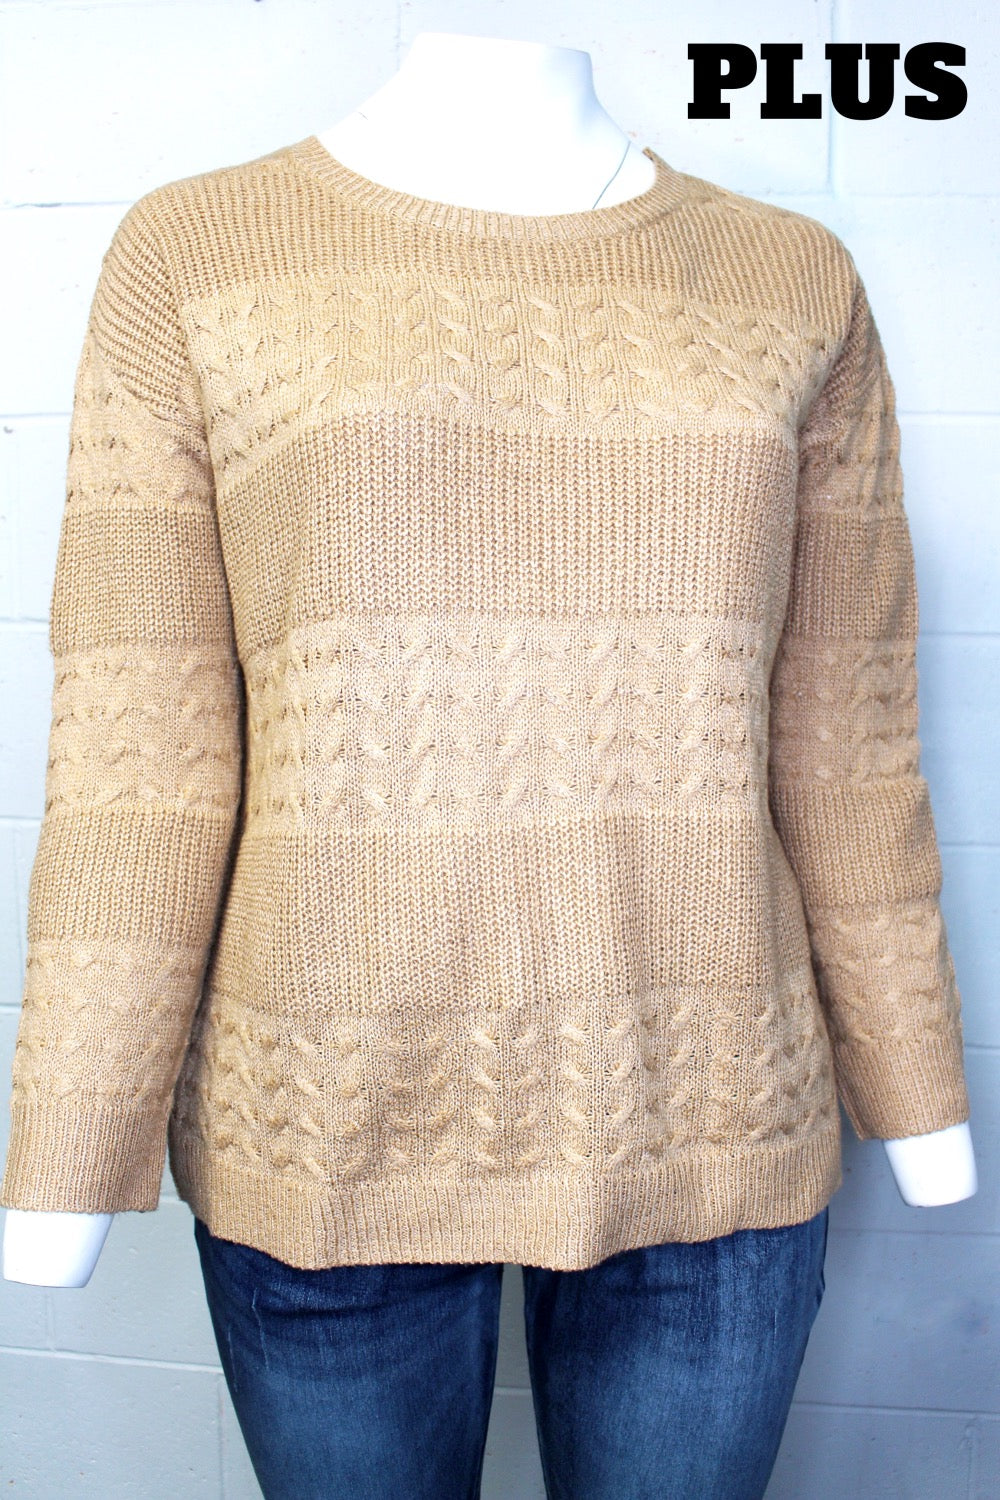 Women's Plus Size Long Sleeve Knitted Sweater